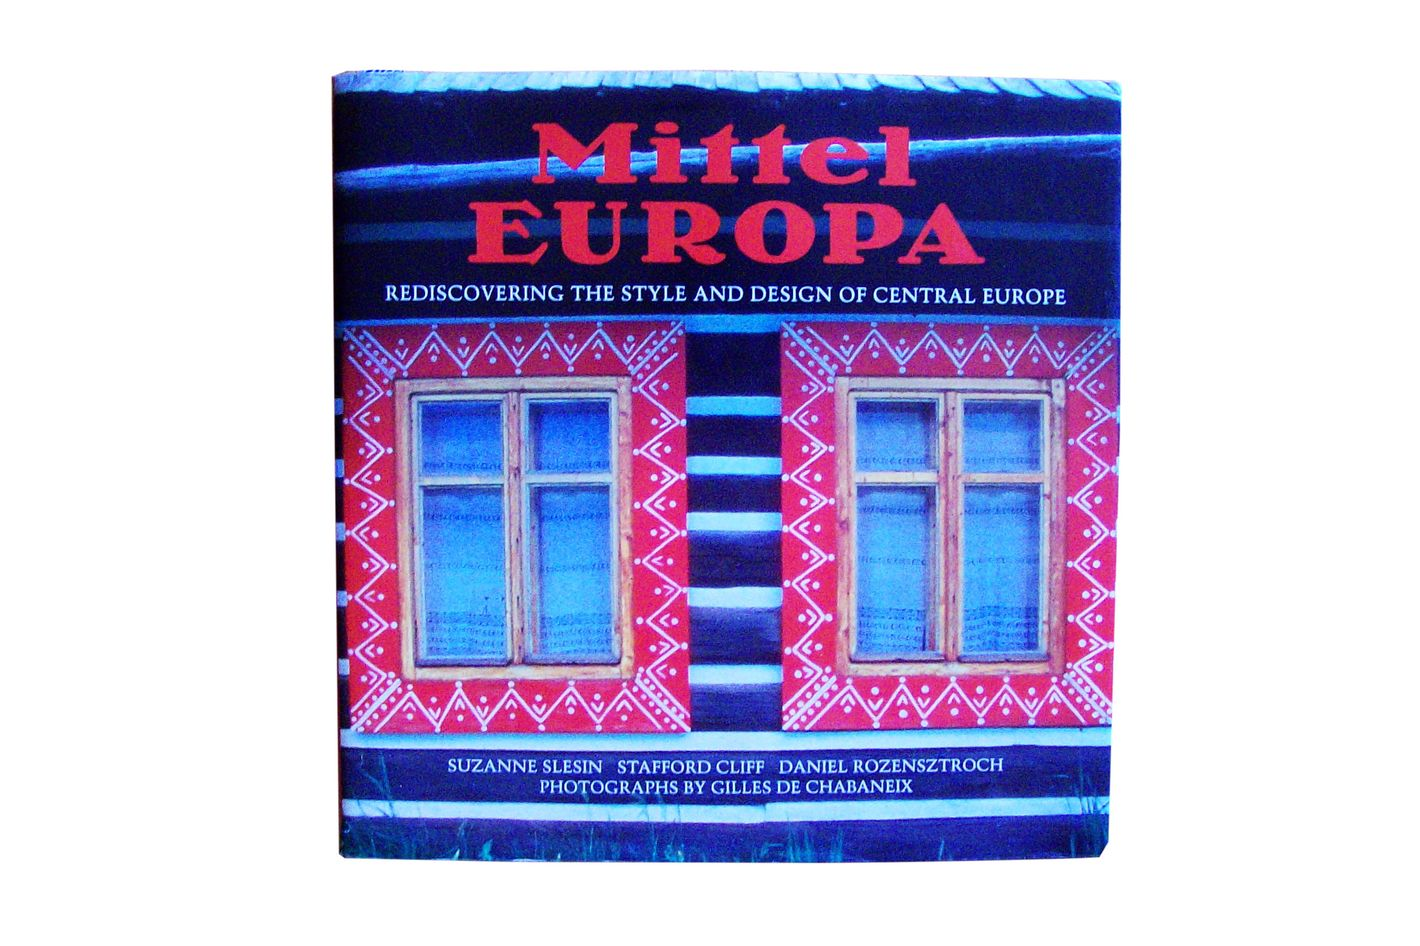 Mittel Europa: Rediscovering the Style and Design of Central Europe by  Suzanne Slesin (1994) - The Best Vintage Coffee-Table Books You Can Buy On Amazon